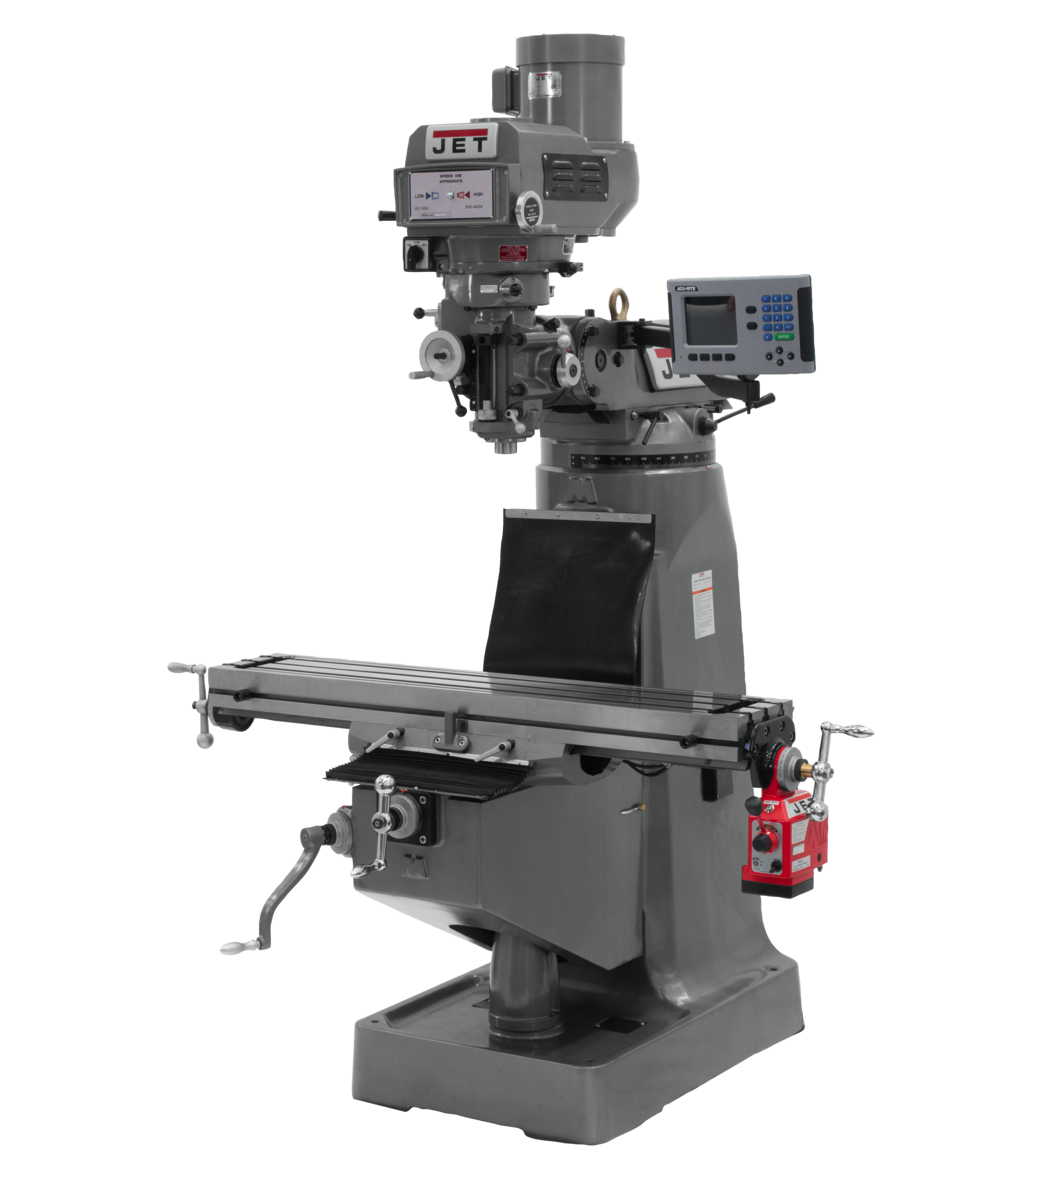 JTM-4VS Mill With 3-Axis ACU-RITE 203 DRO (Knee) With X-Axis Powerfeed